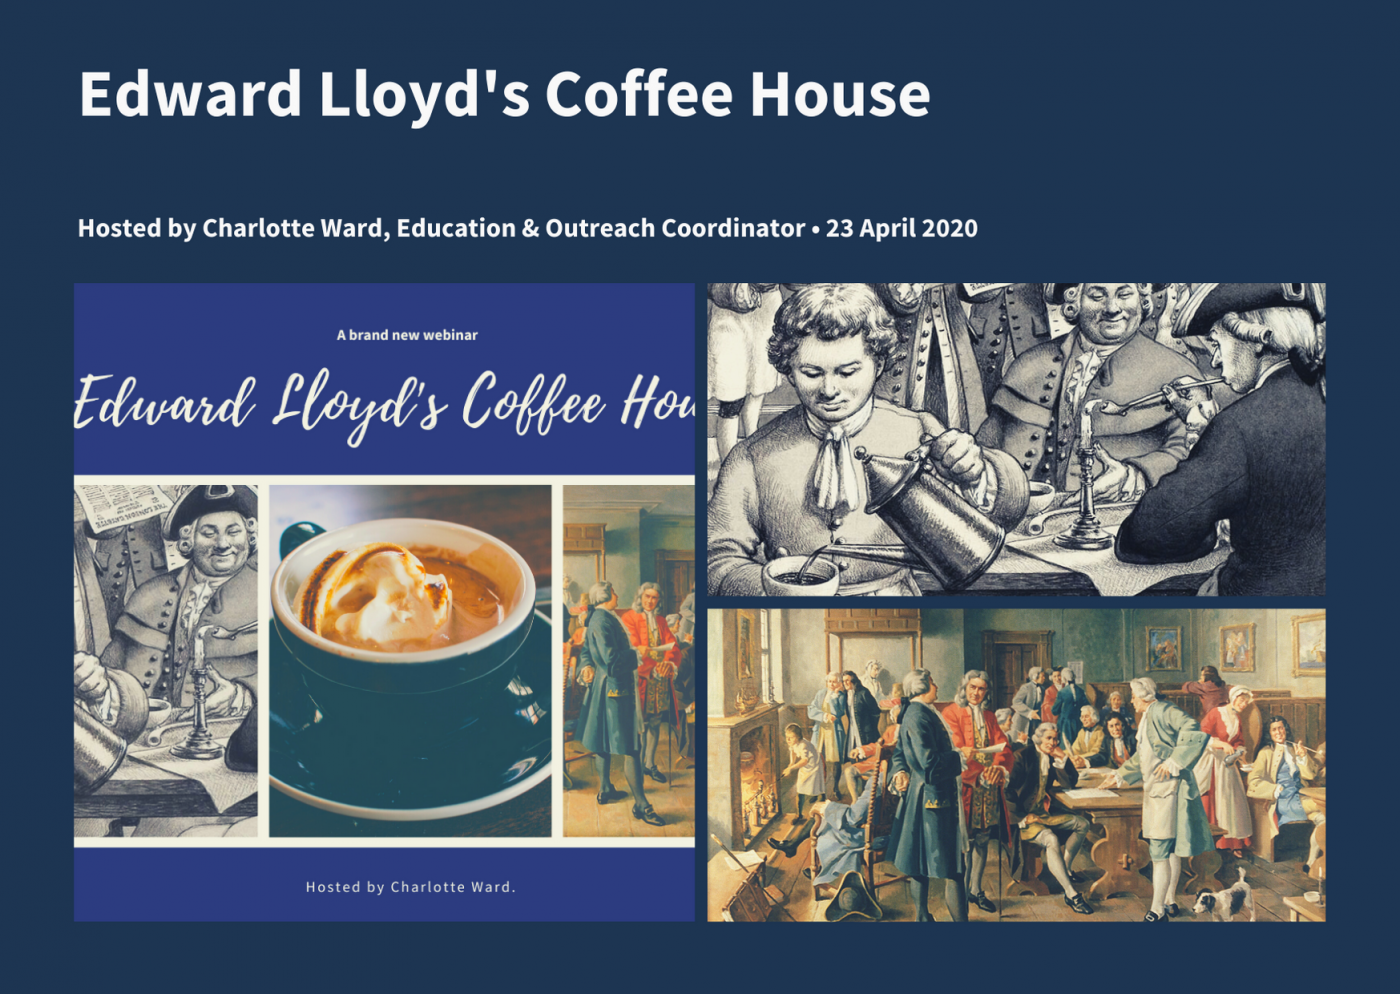 Edward Lloyd's Coffee House overview